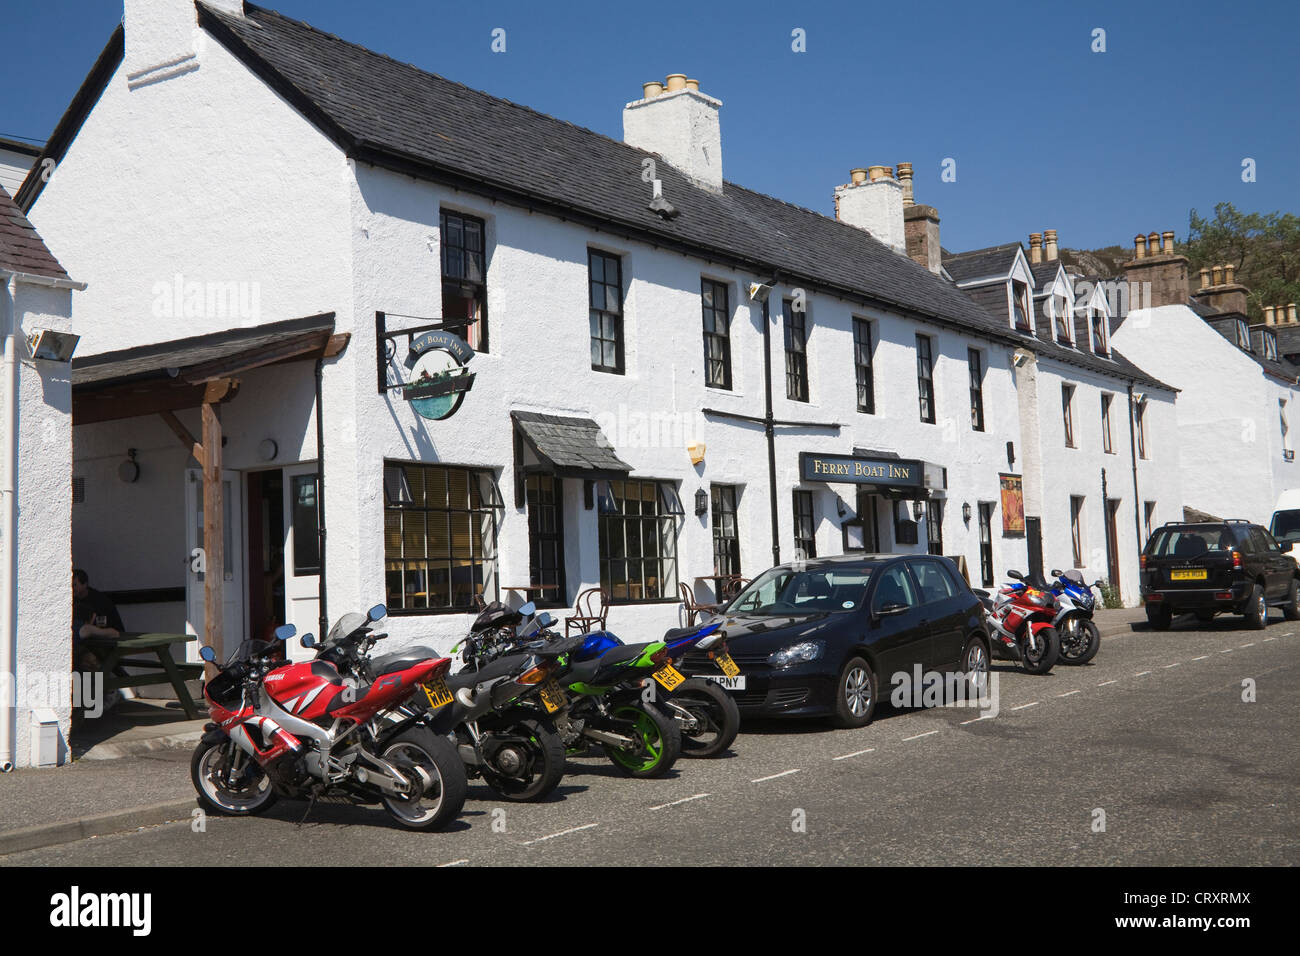 Ullapool Ross and Cromarty Scotland UK Motorbikes and cars parked outside the popular Ferry Boat Inn on a lovely - Stock Image